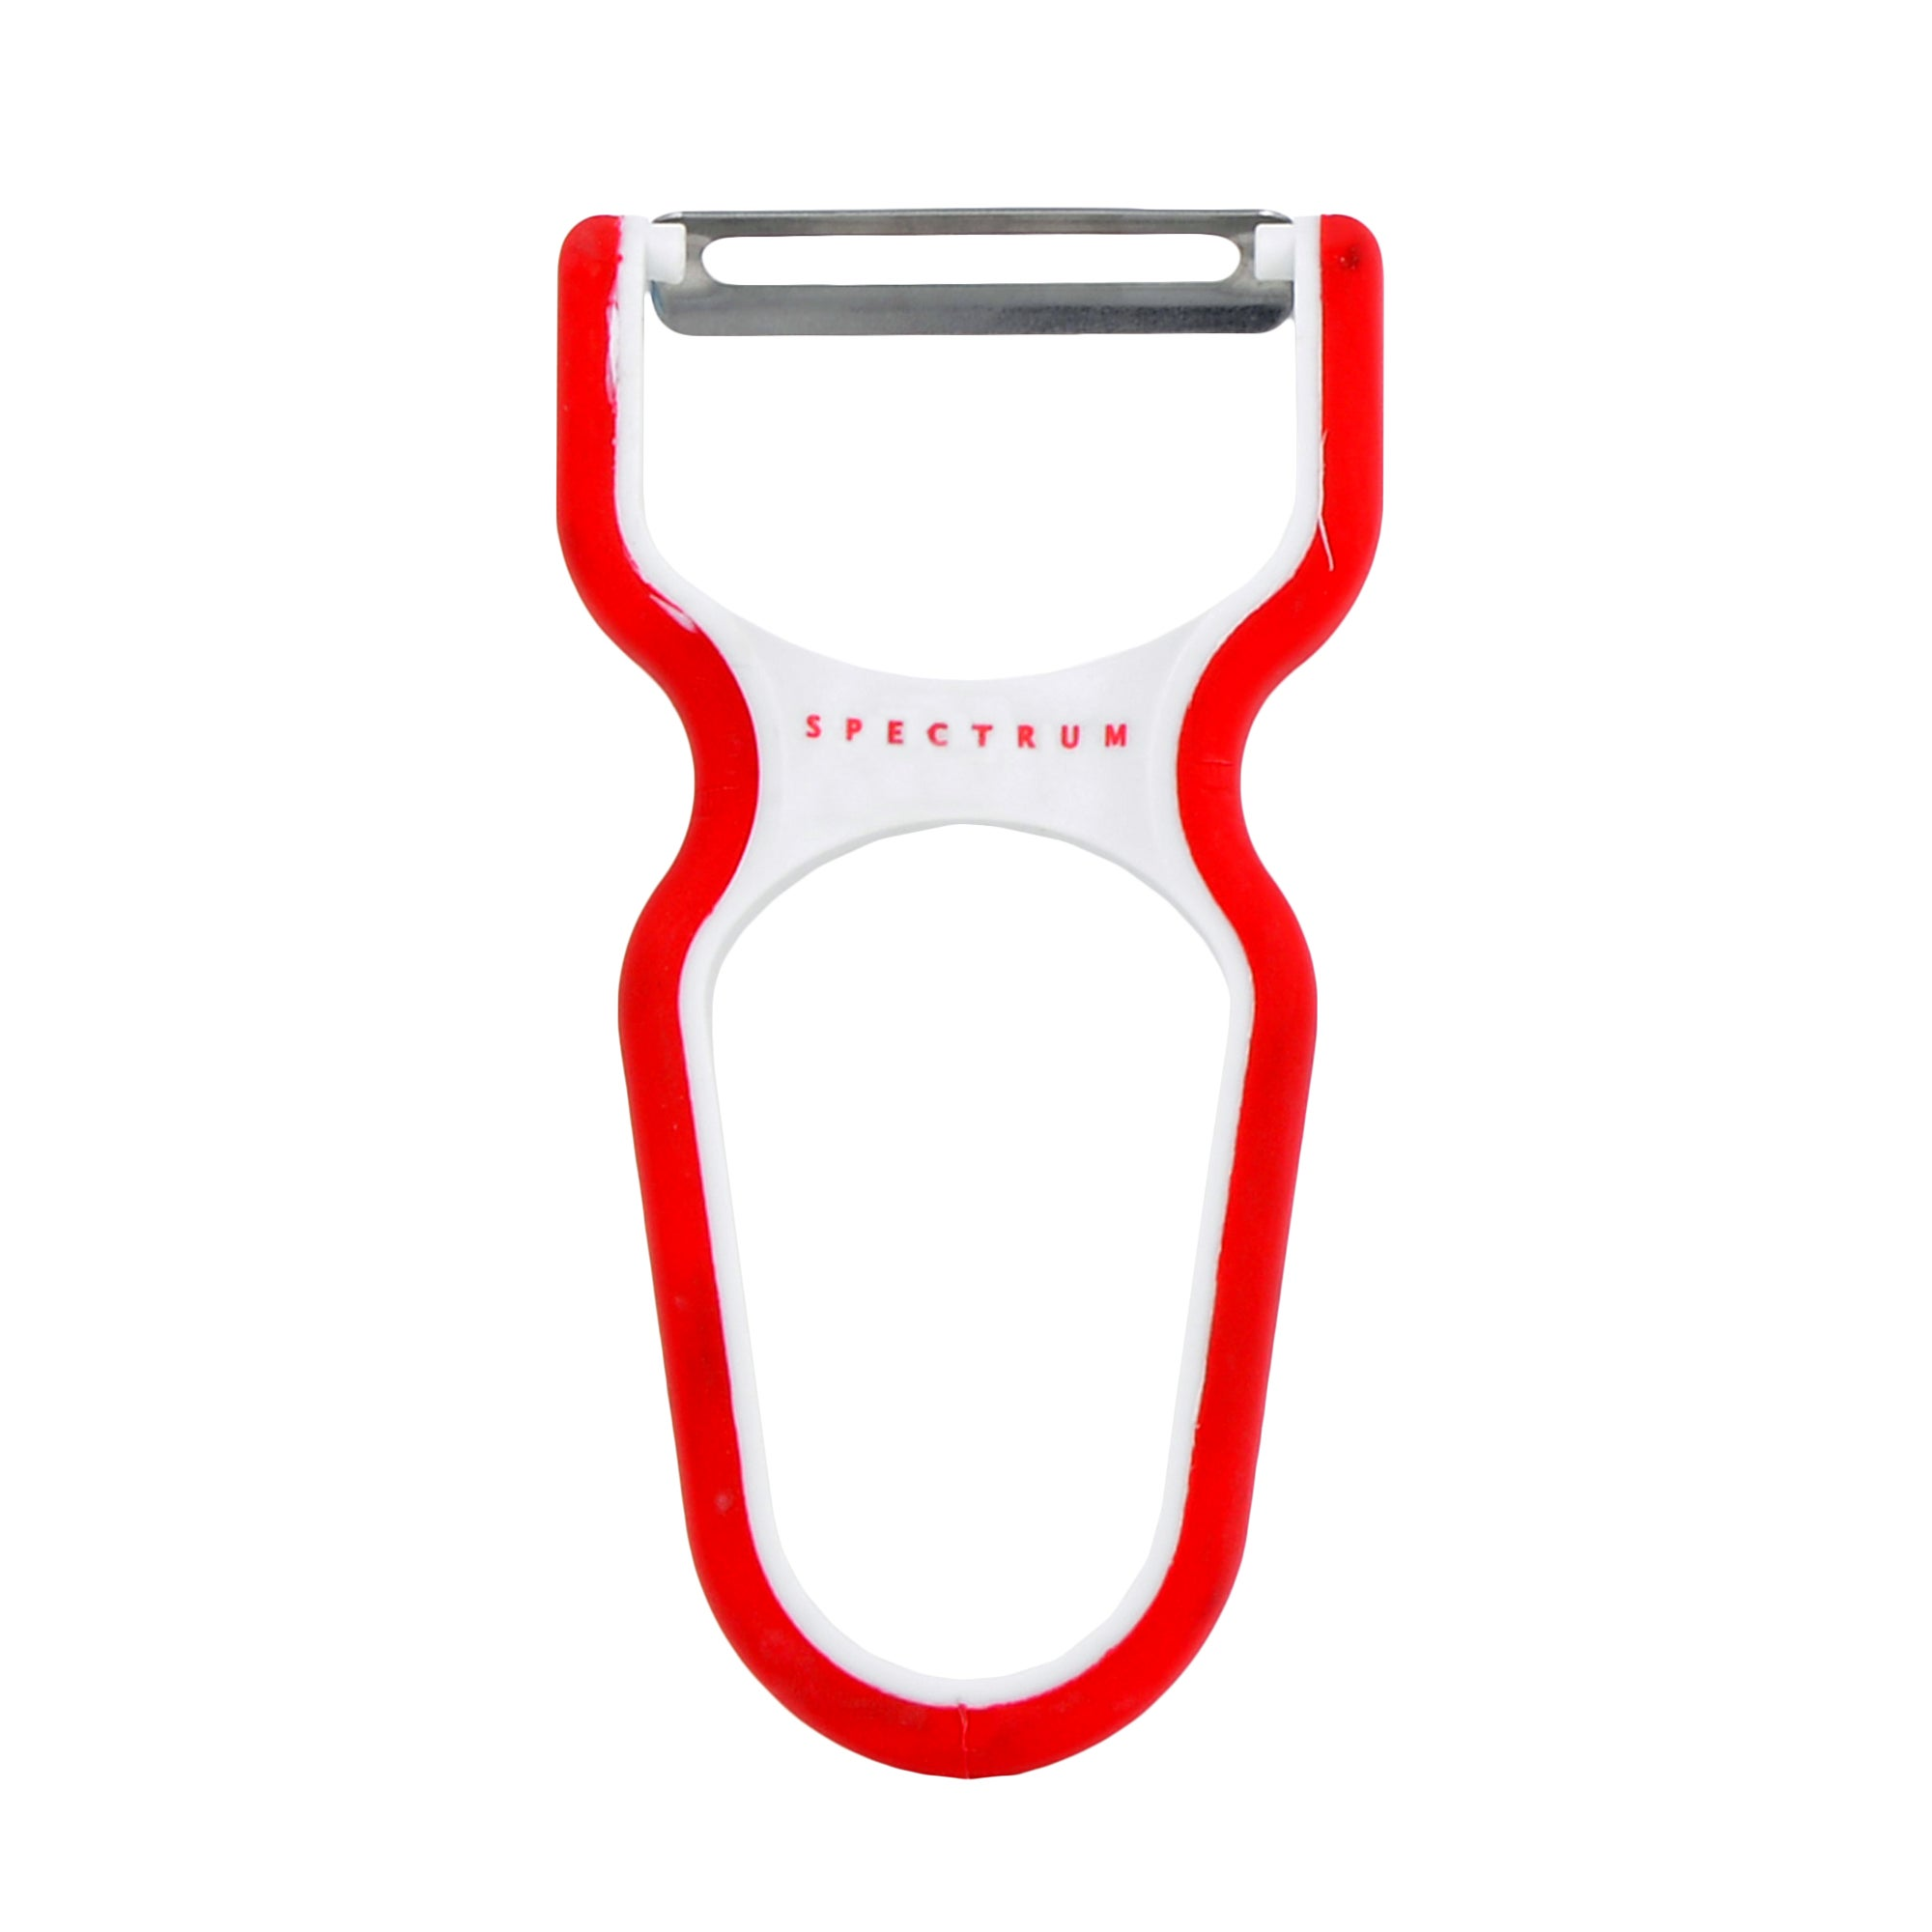 Red Spectrum Collection Soft Touch Peeler